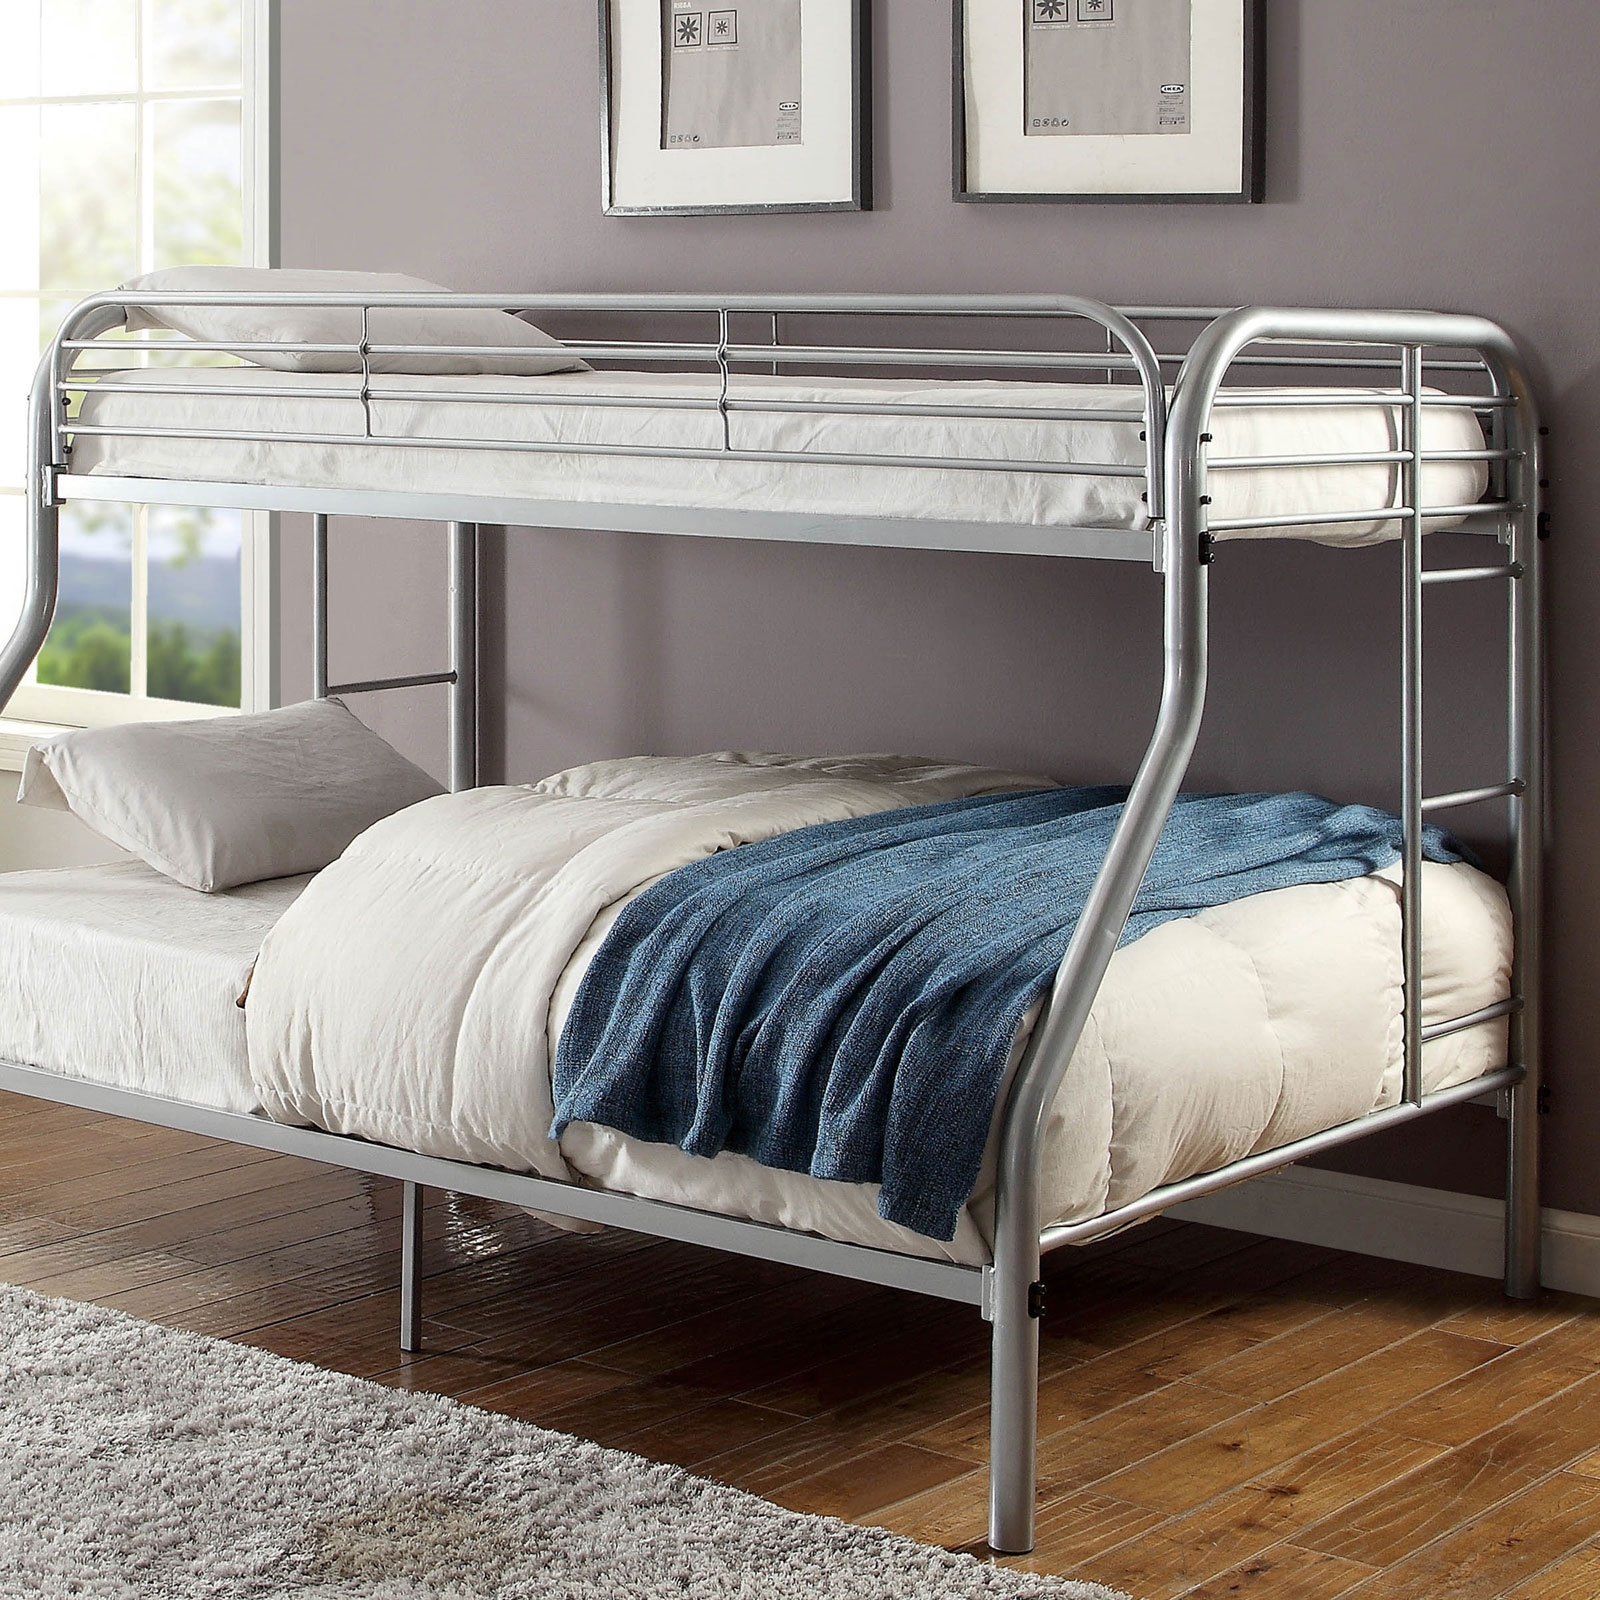 Bed Frames Headboards Footboards Toys Games New Silver Twin Over Twin Metal Bunk Bed Frame